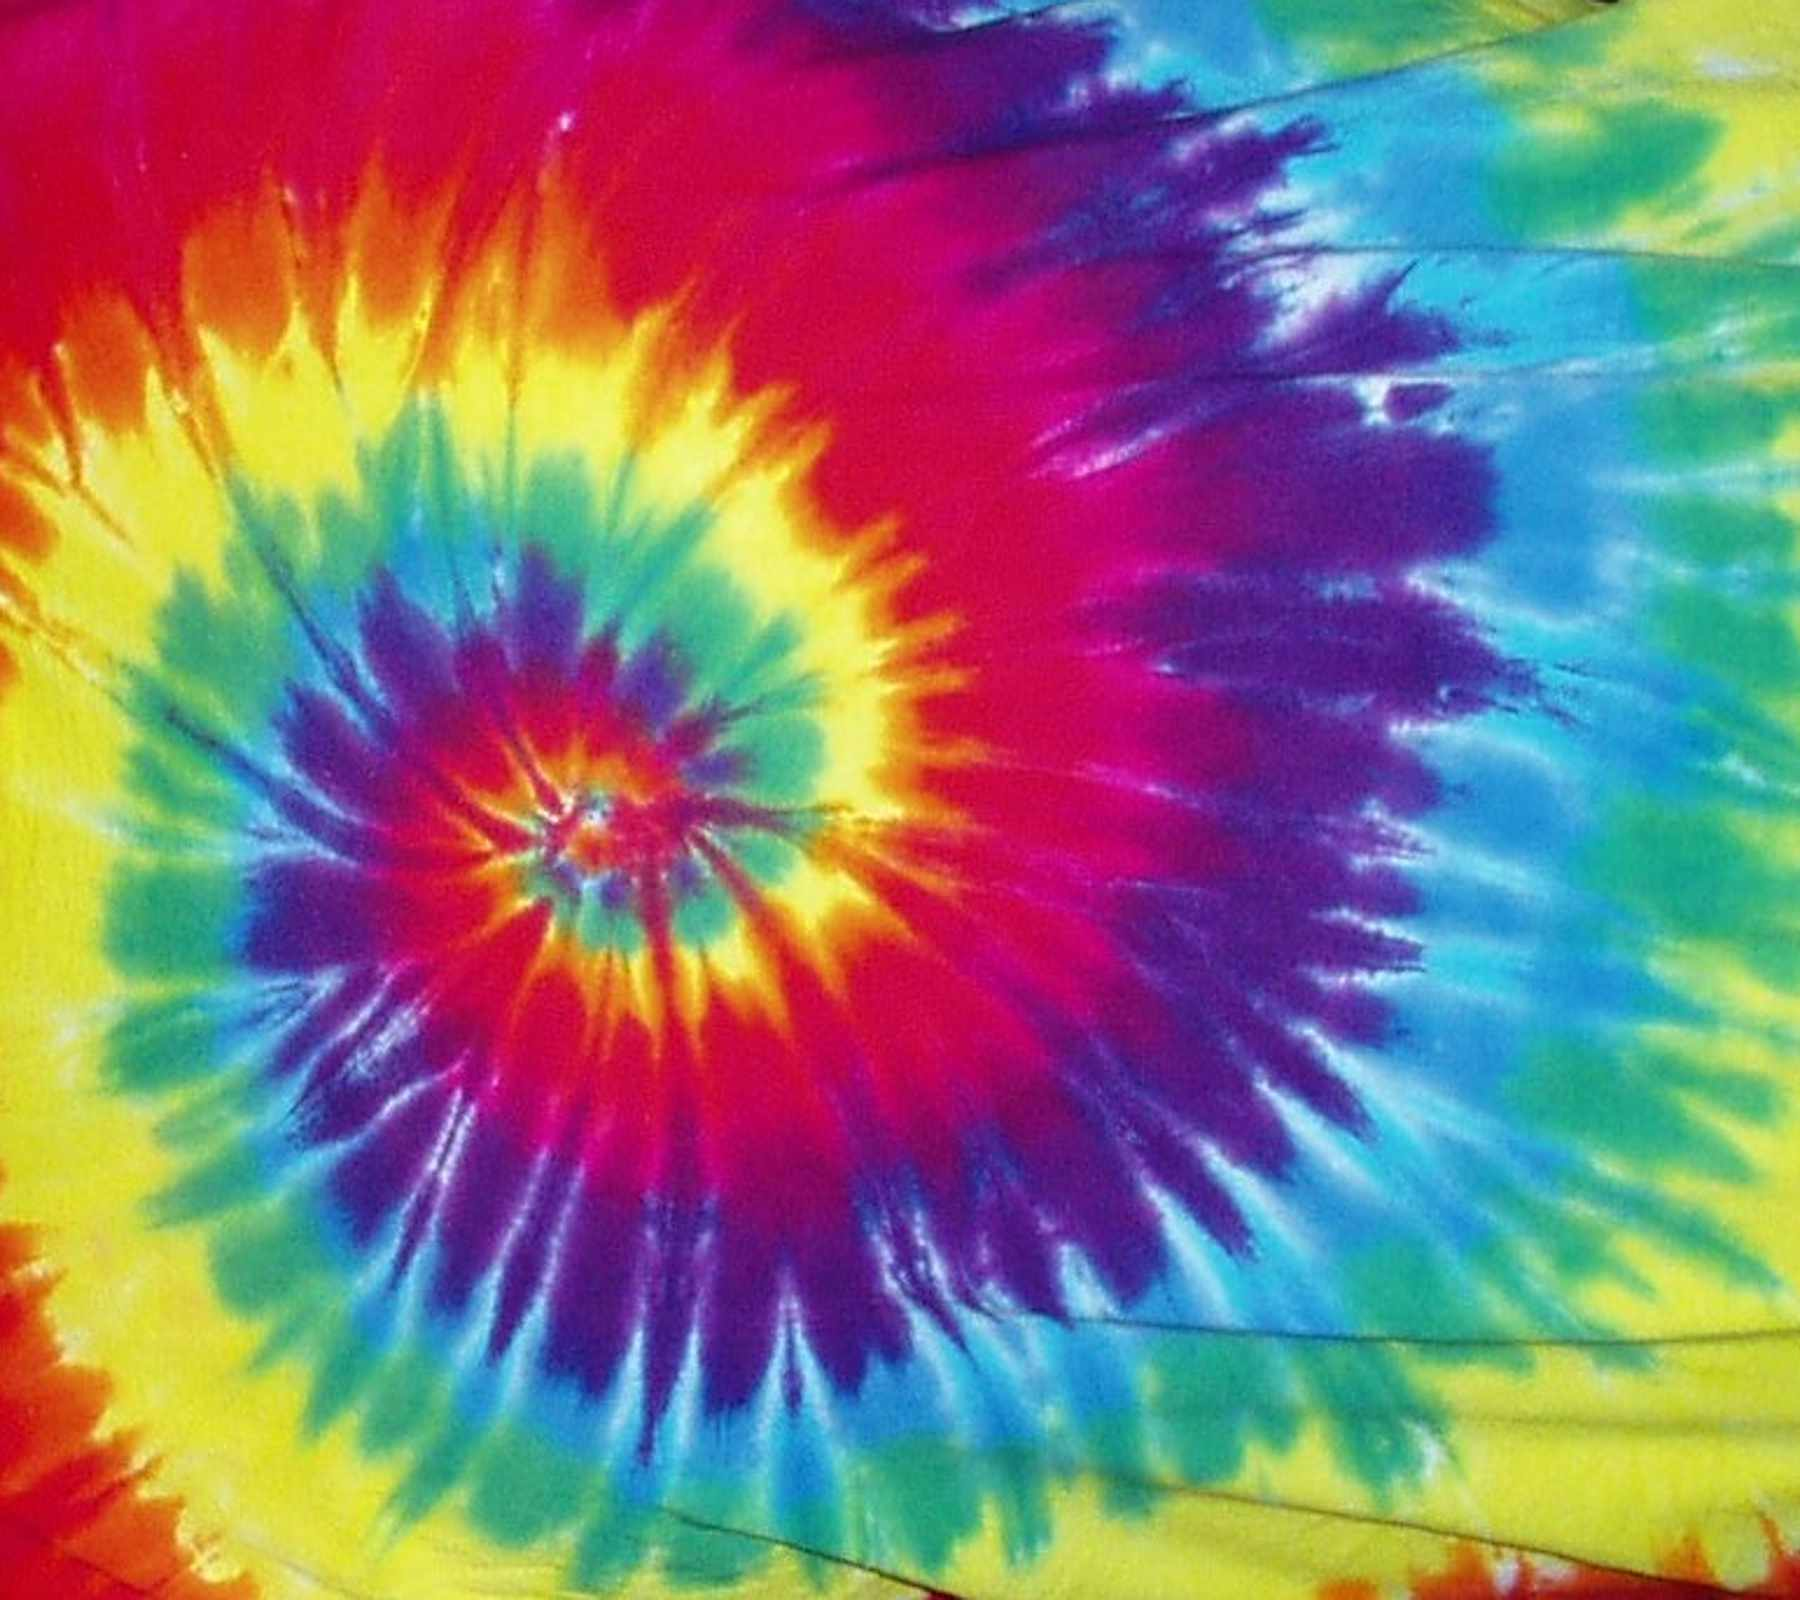 Neon Tie Dye Wallpaper | education-photography.com